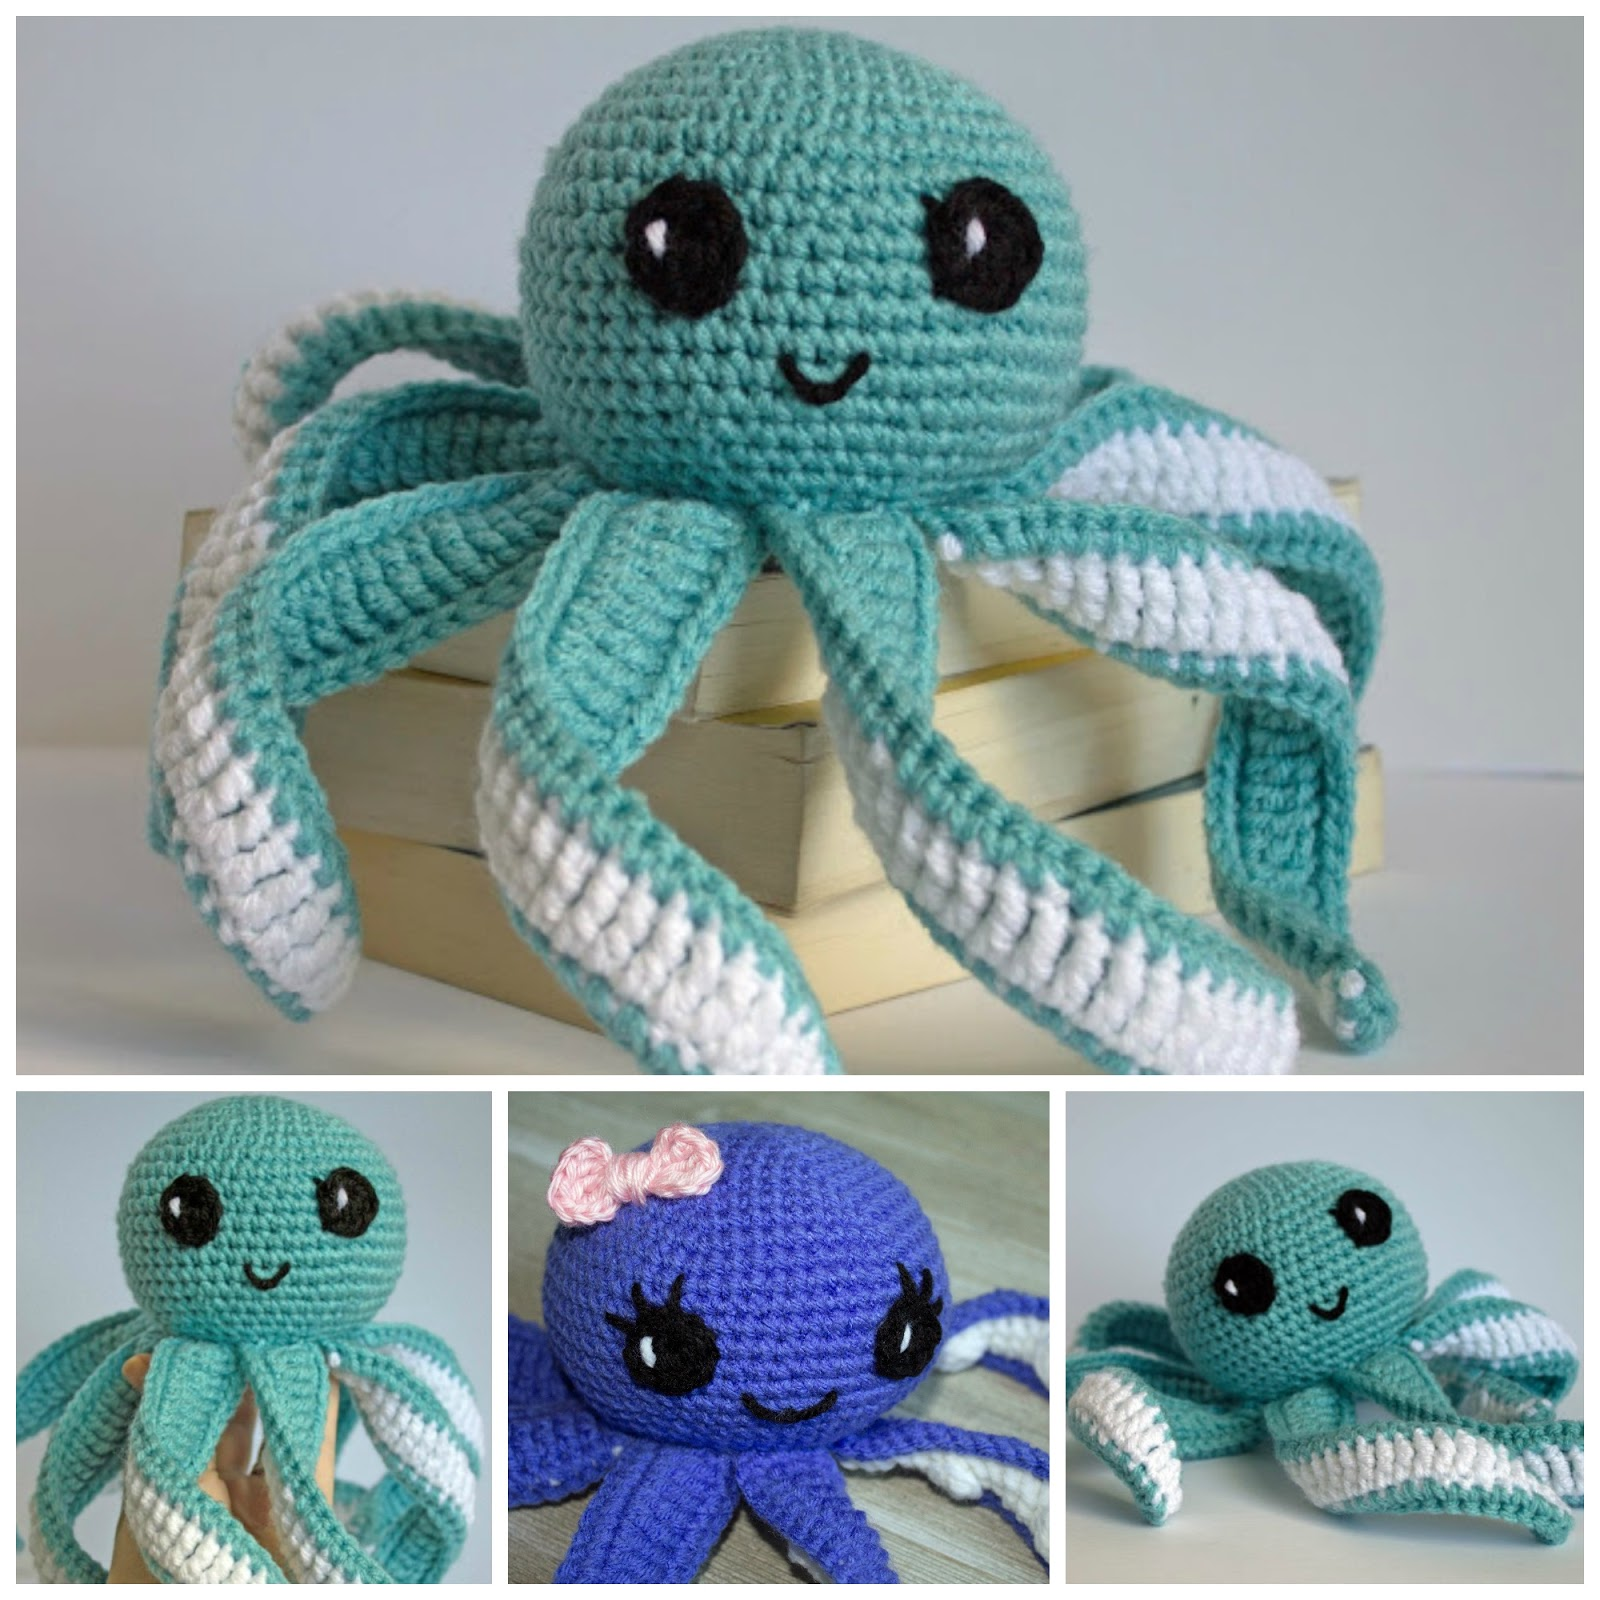 Crochet Baby Octopus Toy - Free Crochet Pattern - Whistle and Ivy | 1600x1600